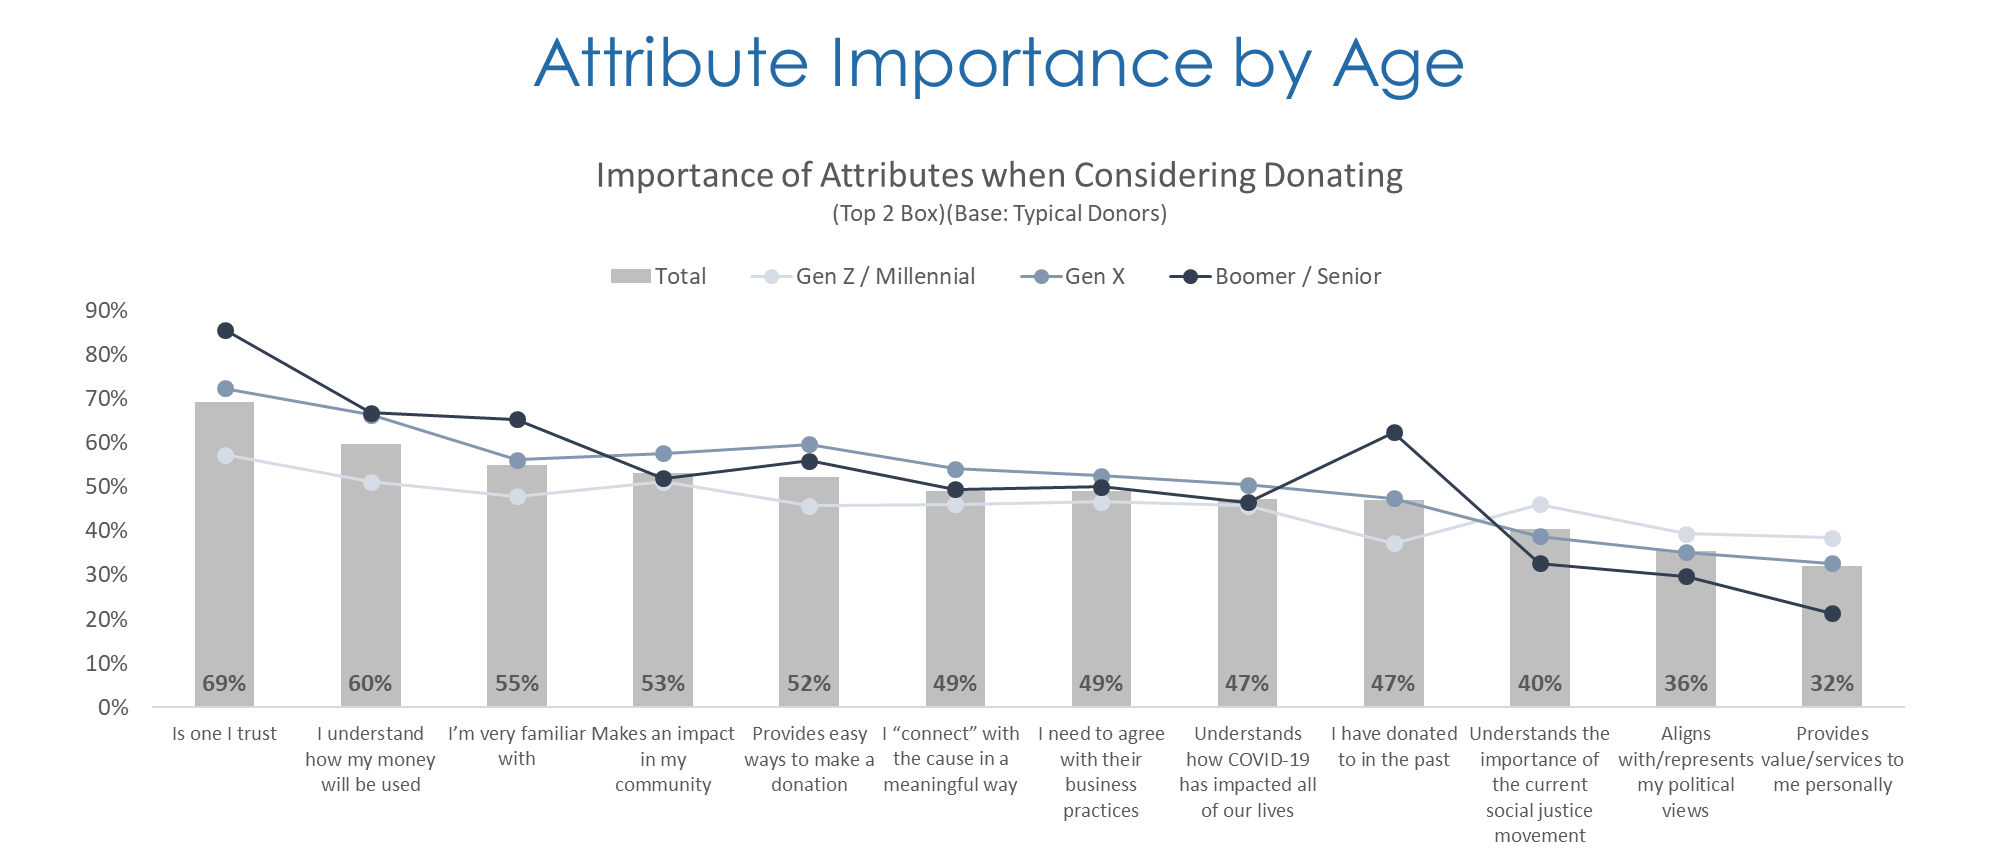 Figure 3. Boomers/Seniors place a unique importance on an organization's credibility — trust, familiarity, and past donation history — when deciding on a nonprofit for donation. Conversely, younger donors are more heavily influenced by political and social causes of the nonprofit.